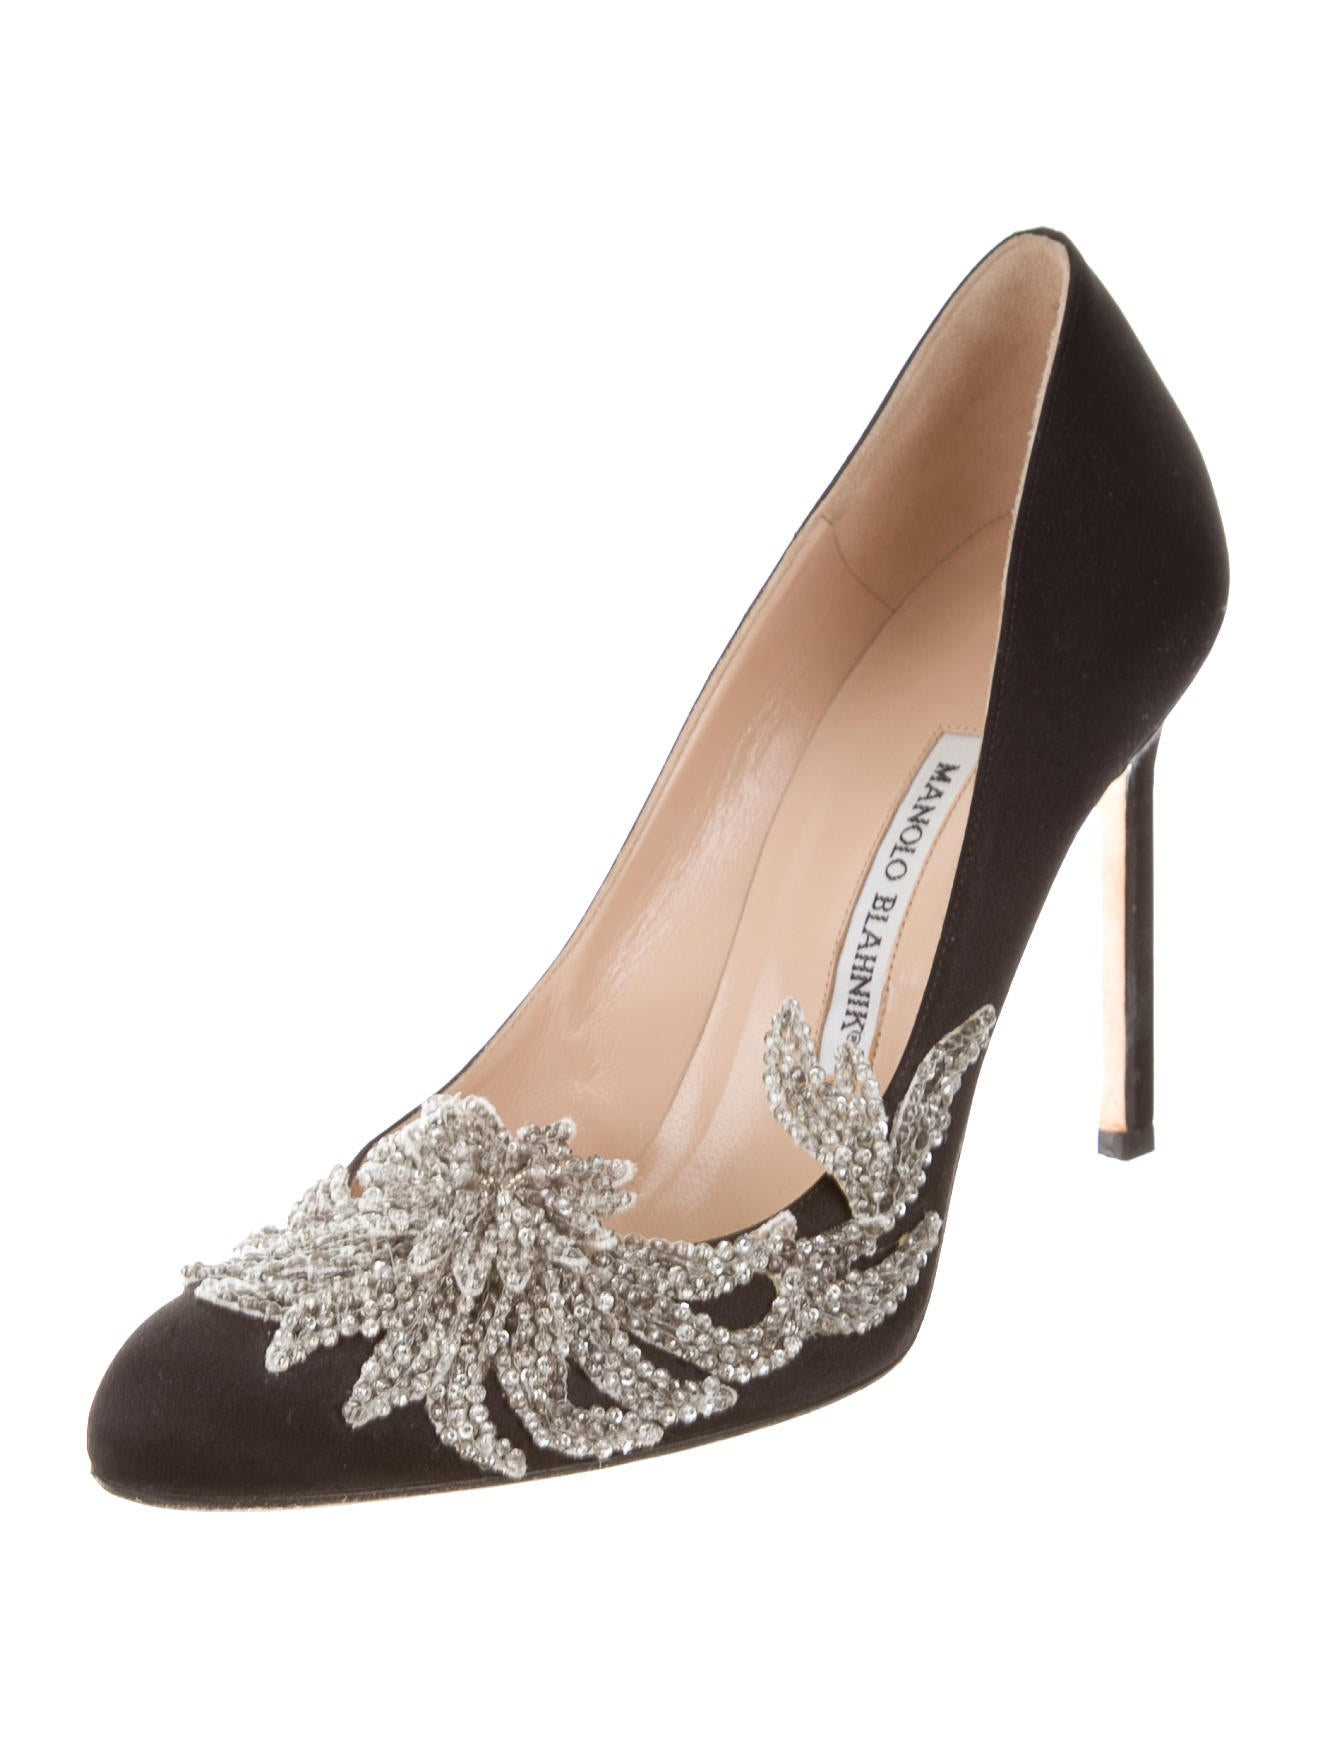 Manolo blahnik satin swan pumps shoes moo63341 the for Shoes by manolo blahnik